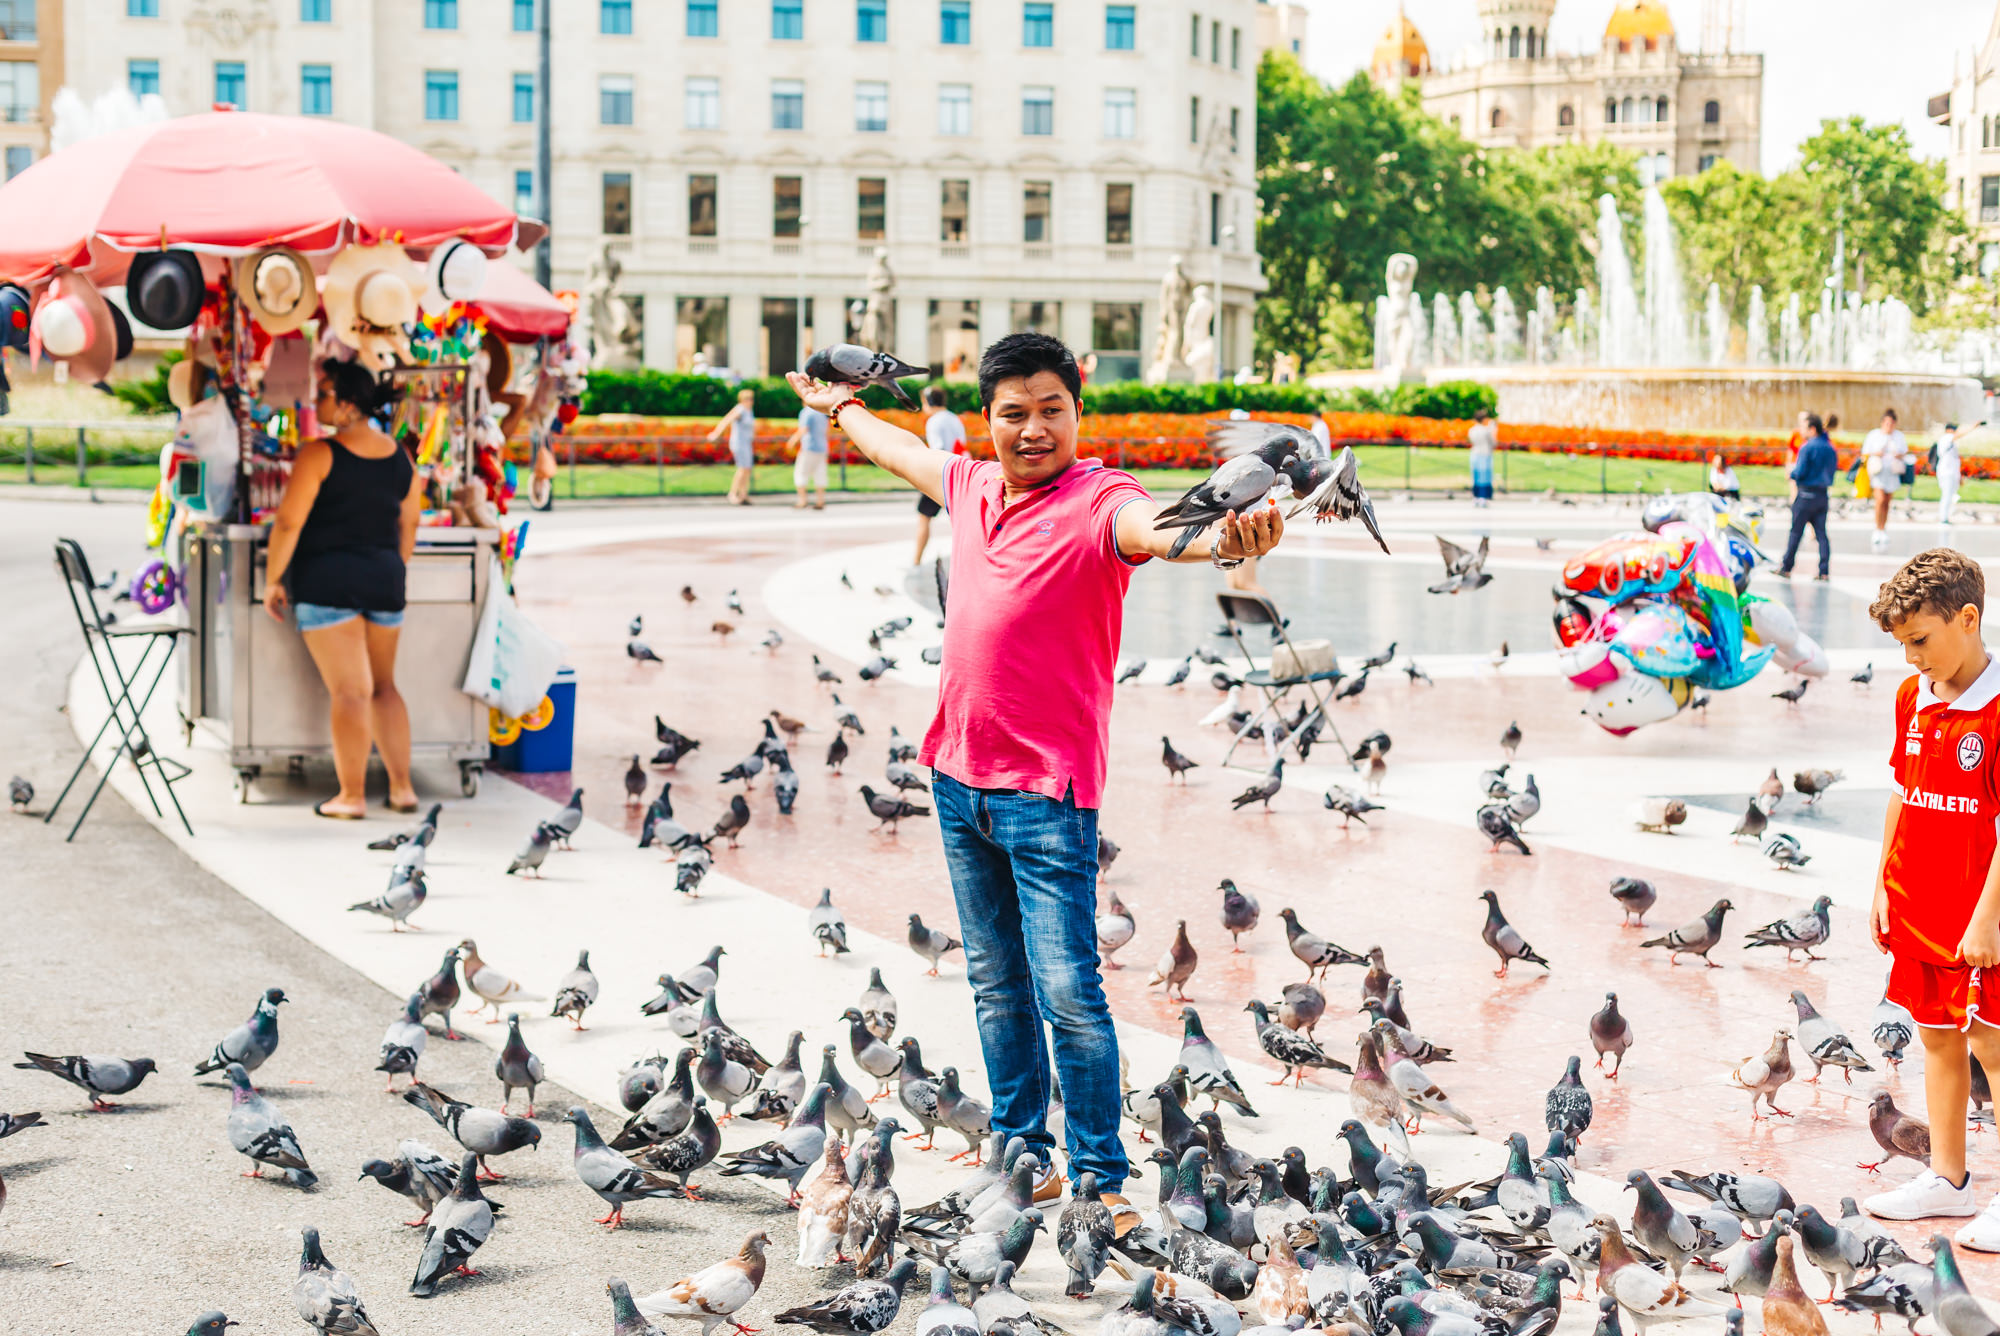 Hundreds of pigeons at Placa de Catalunya